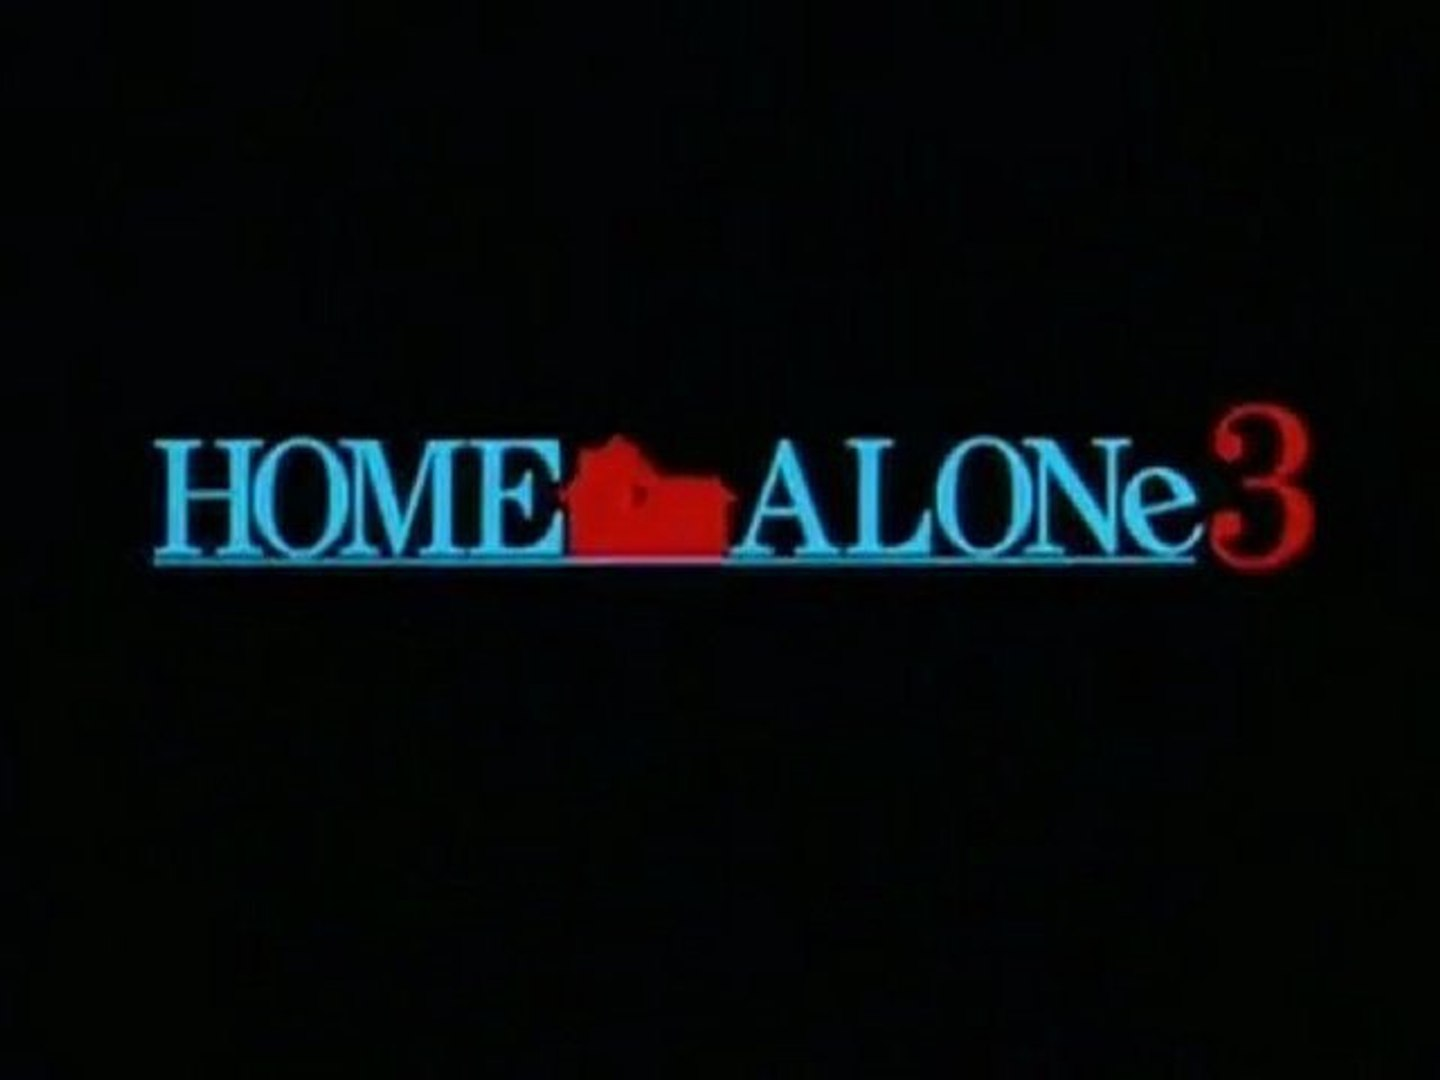 Home Alone 3 (1997) - Official Trailer [VO-HQ]